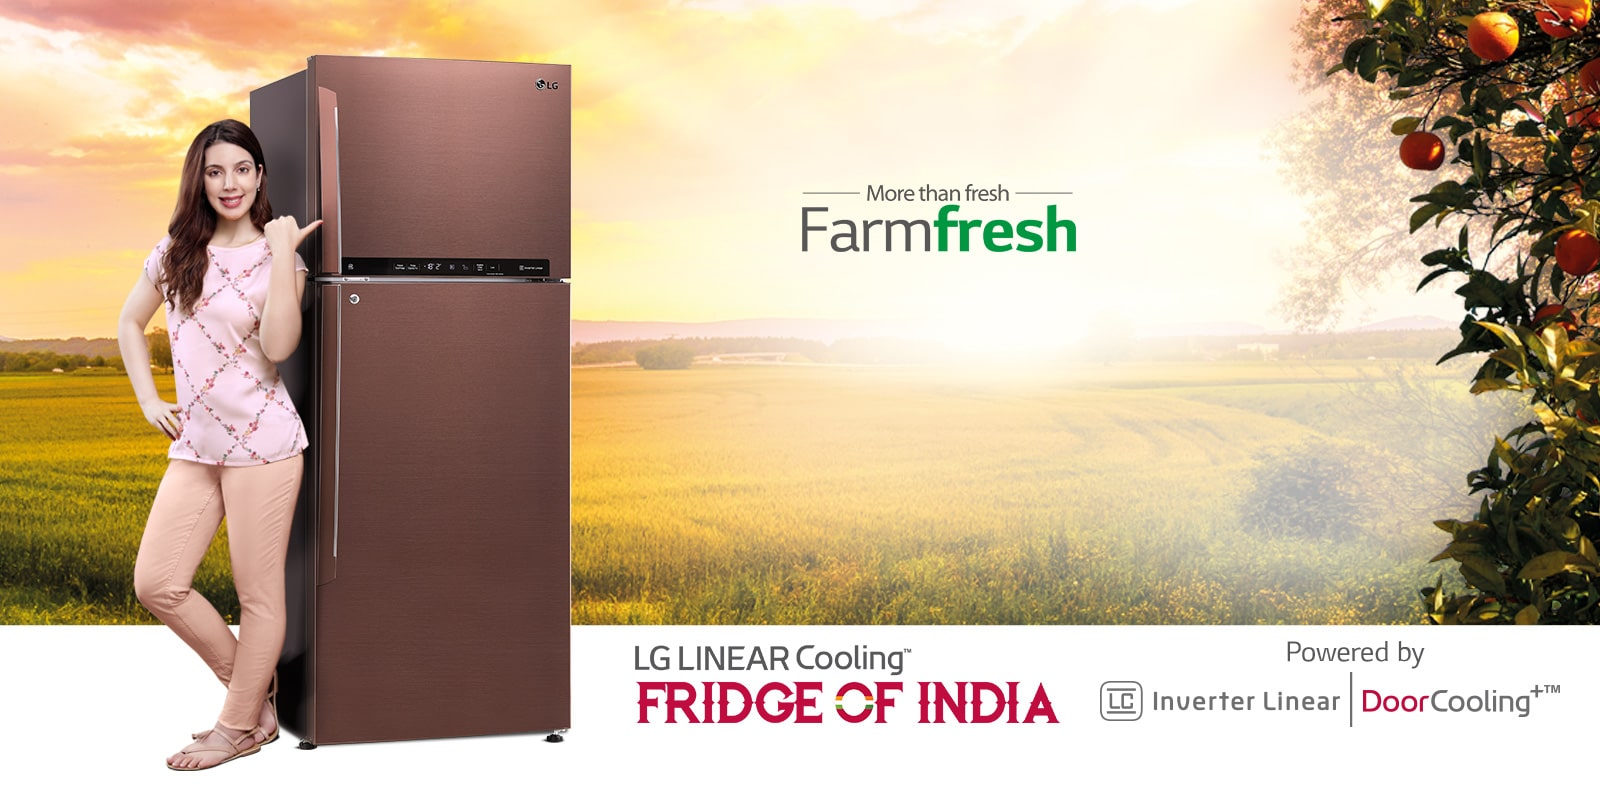 Refrigerators - Smart Single, Double and Multi Door Fridges | LG IN